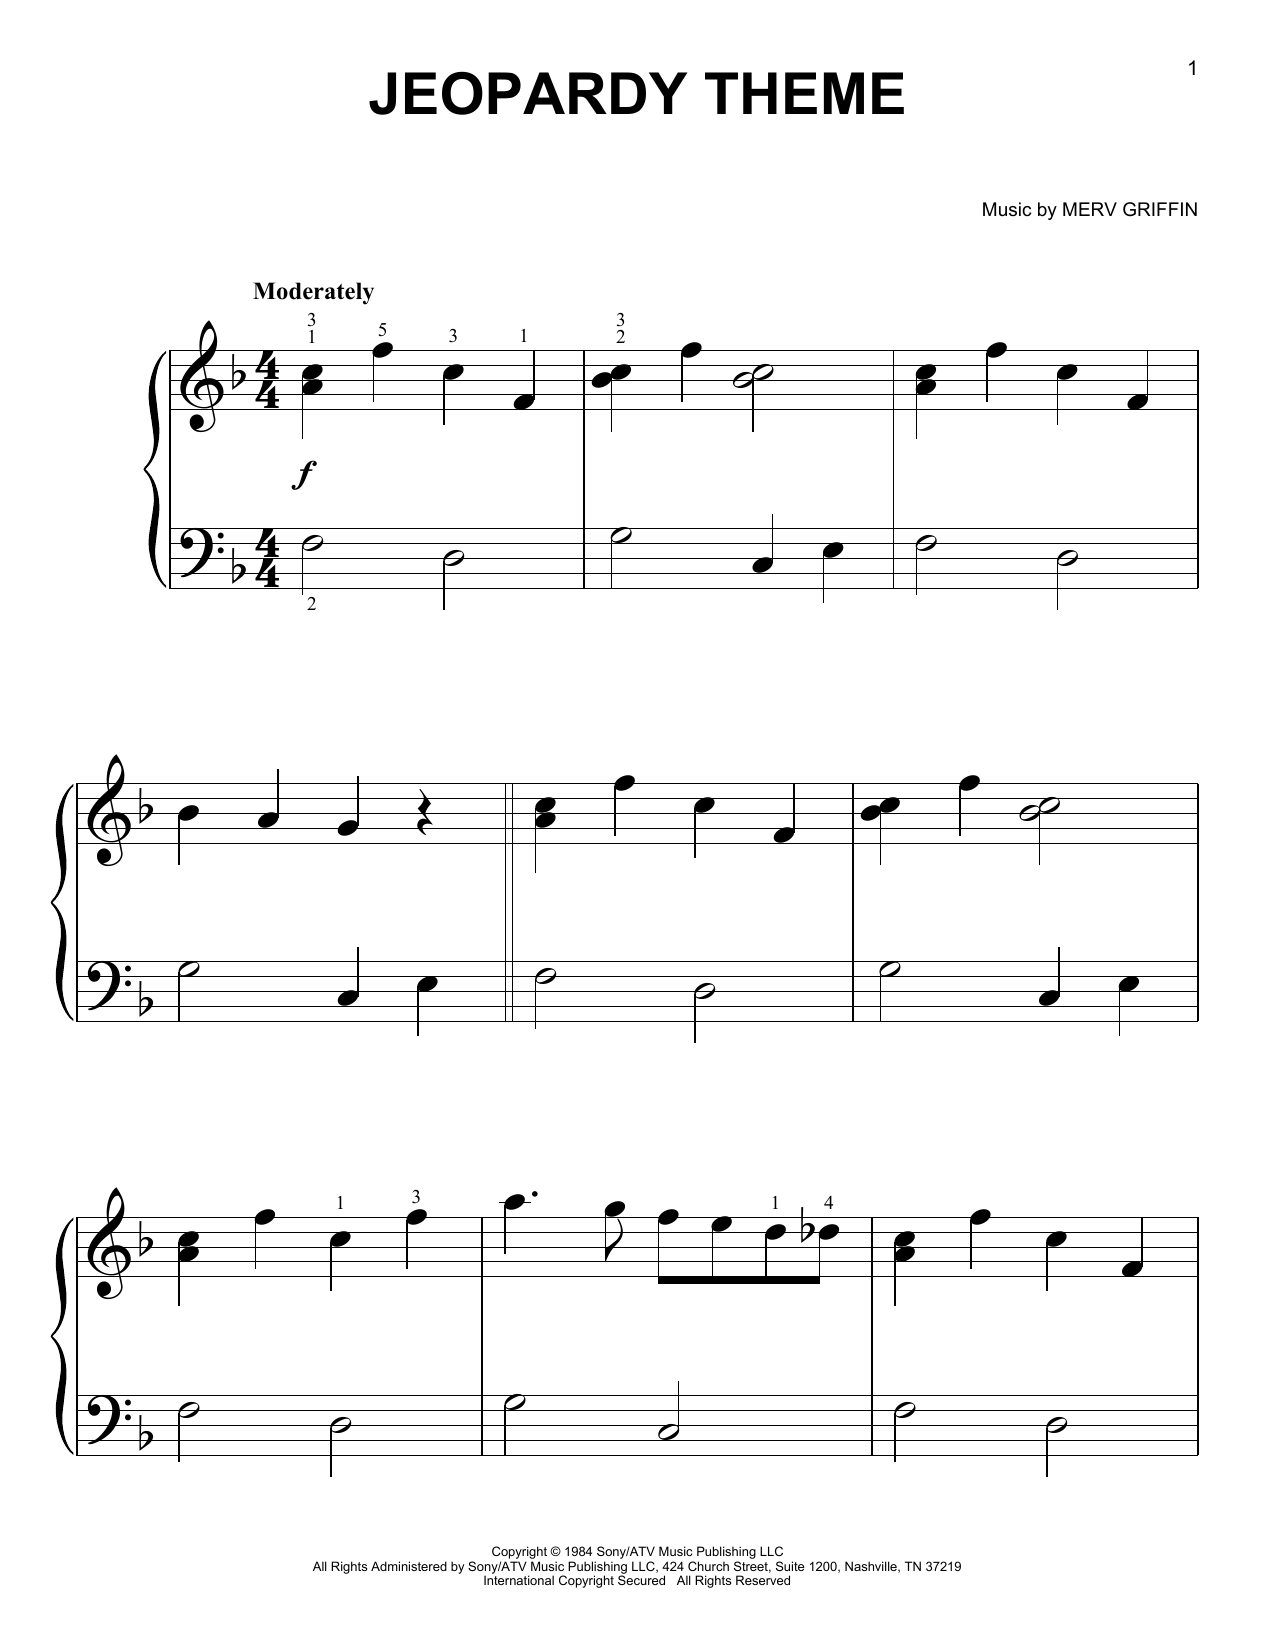 Sheet Music Digital Files To Print - Licensed Film/TV Digital Sheet